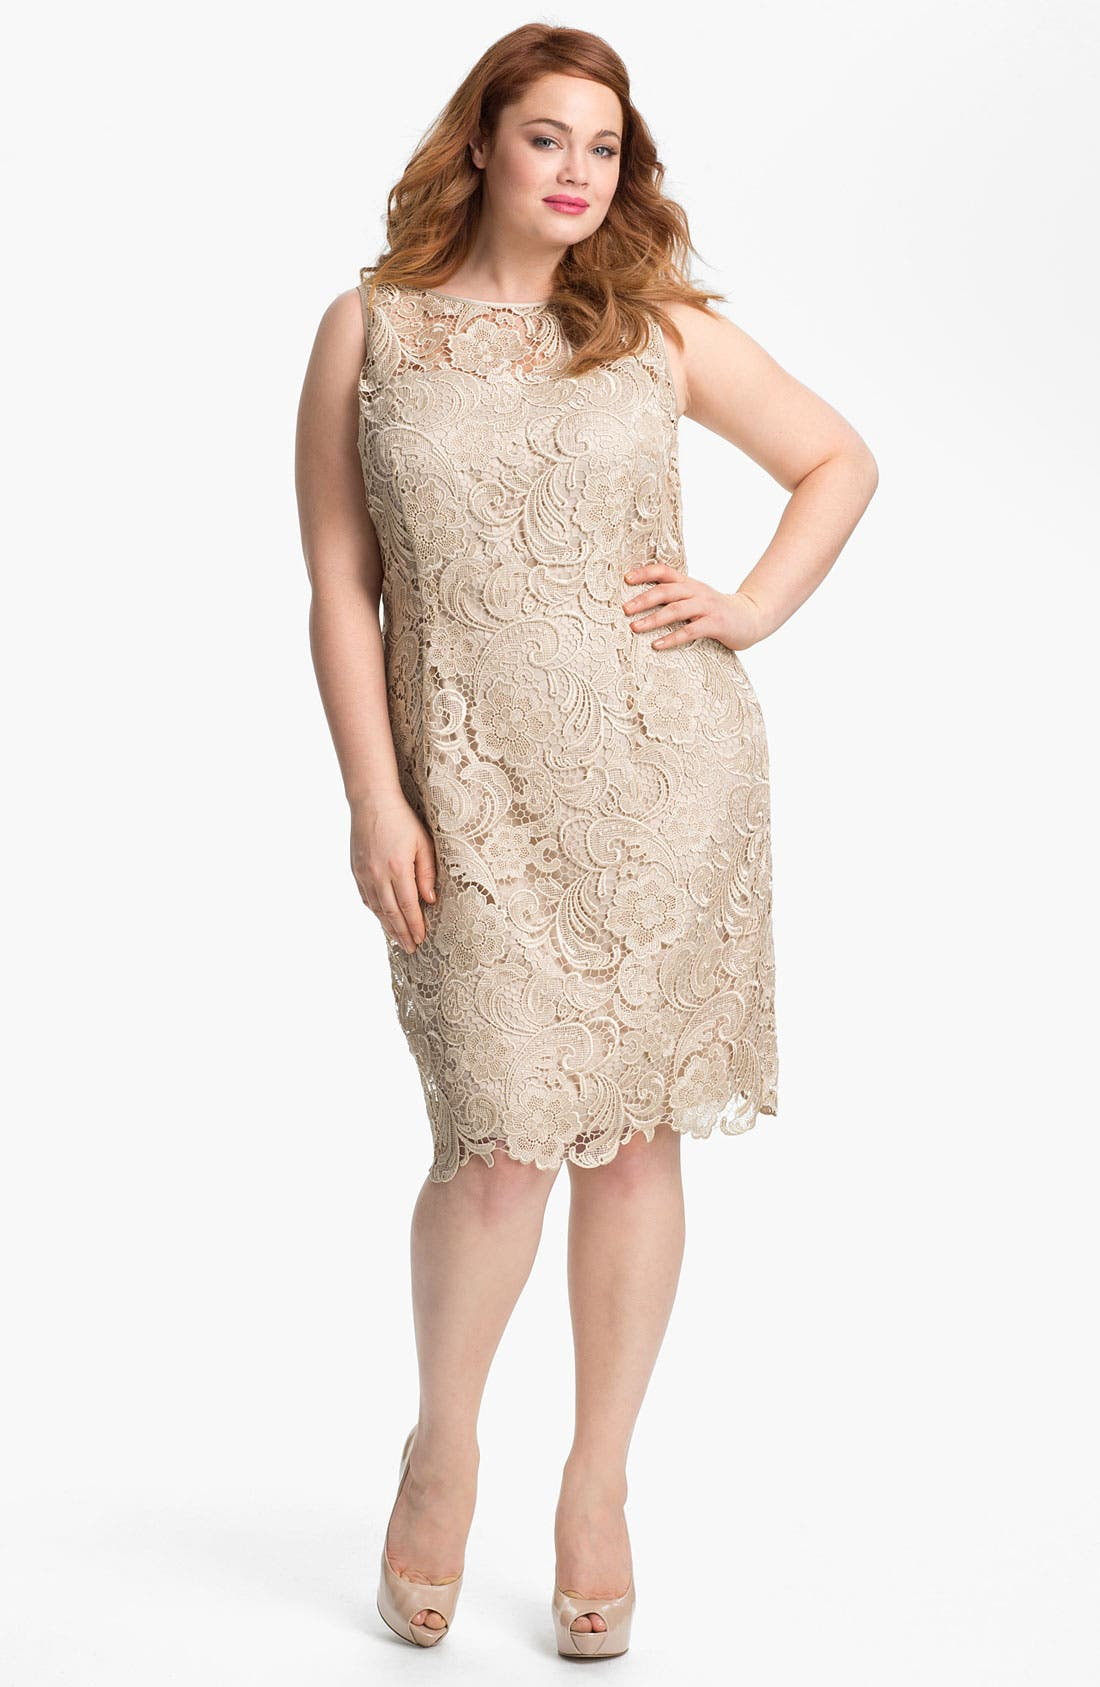 Alternate Image 1 Selected - Adrianna Papell Sleeveless Lace Dress (Plus Size)